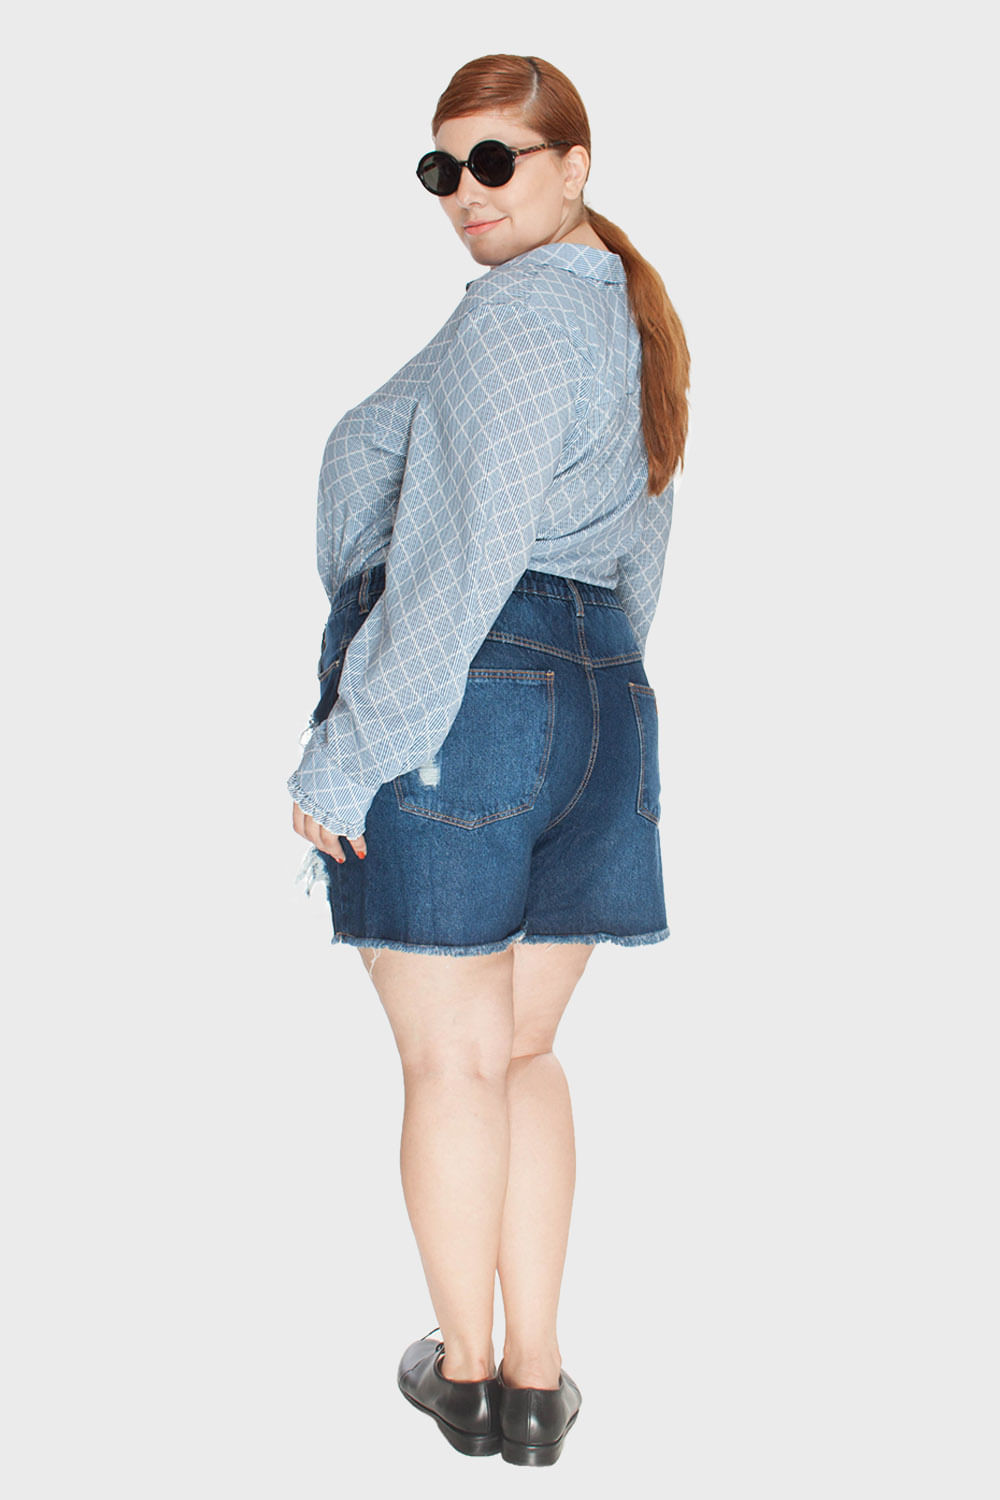 Shorts-Jeans-Upcycle-Stone-Plus-Size_3